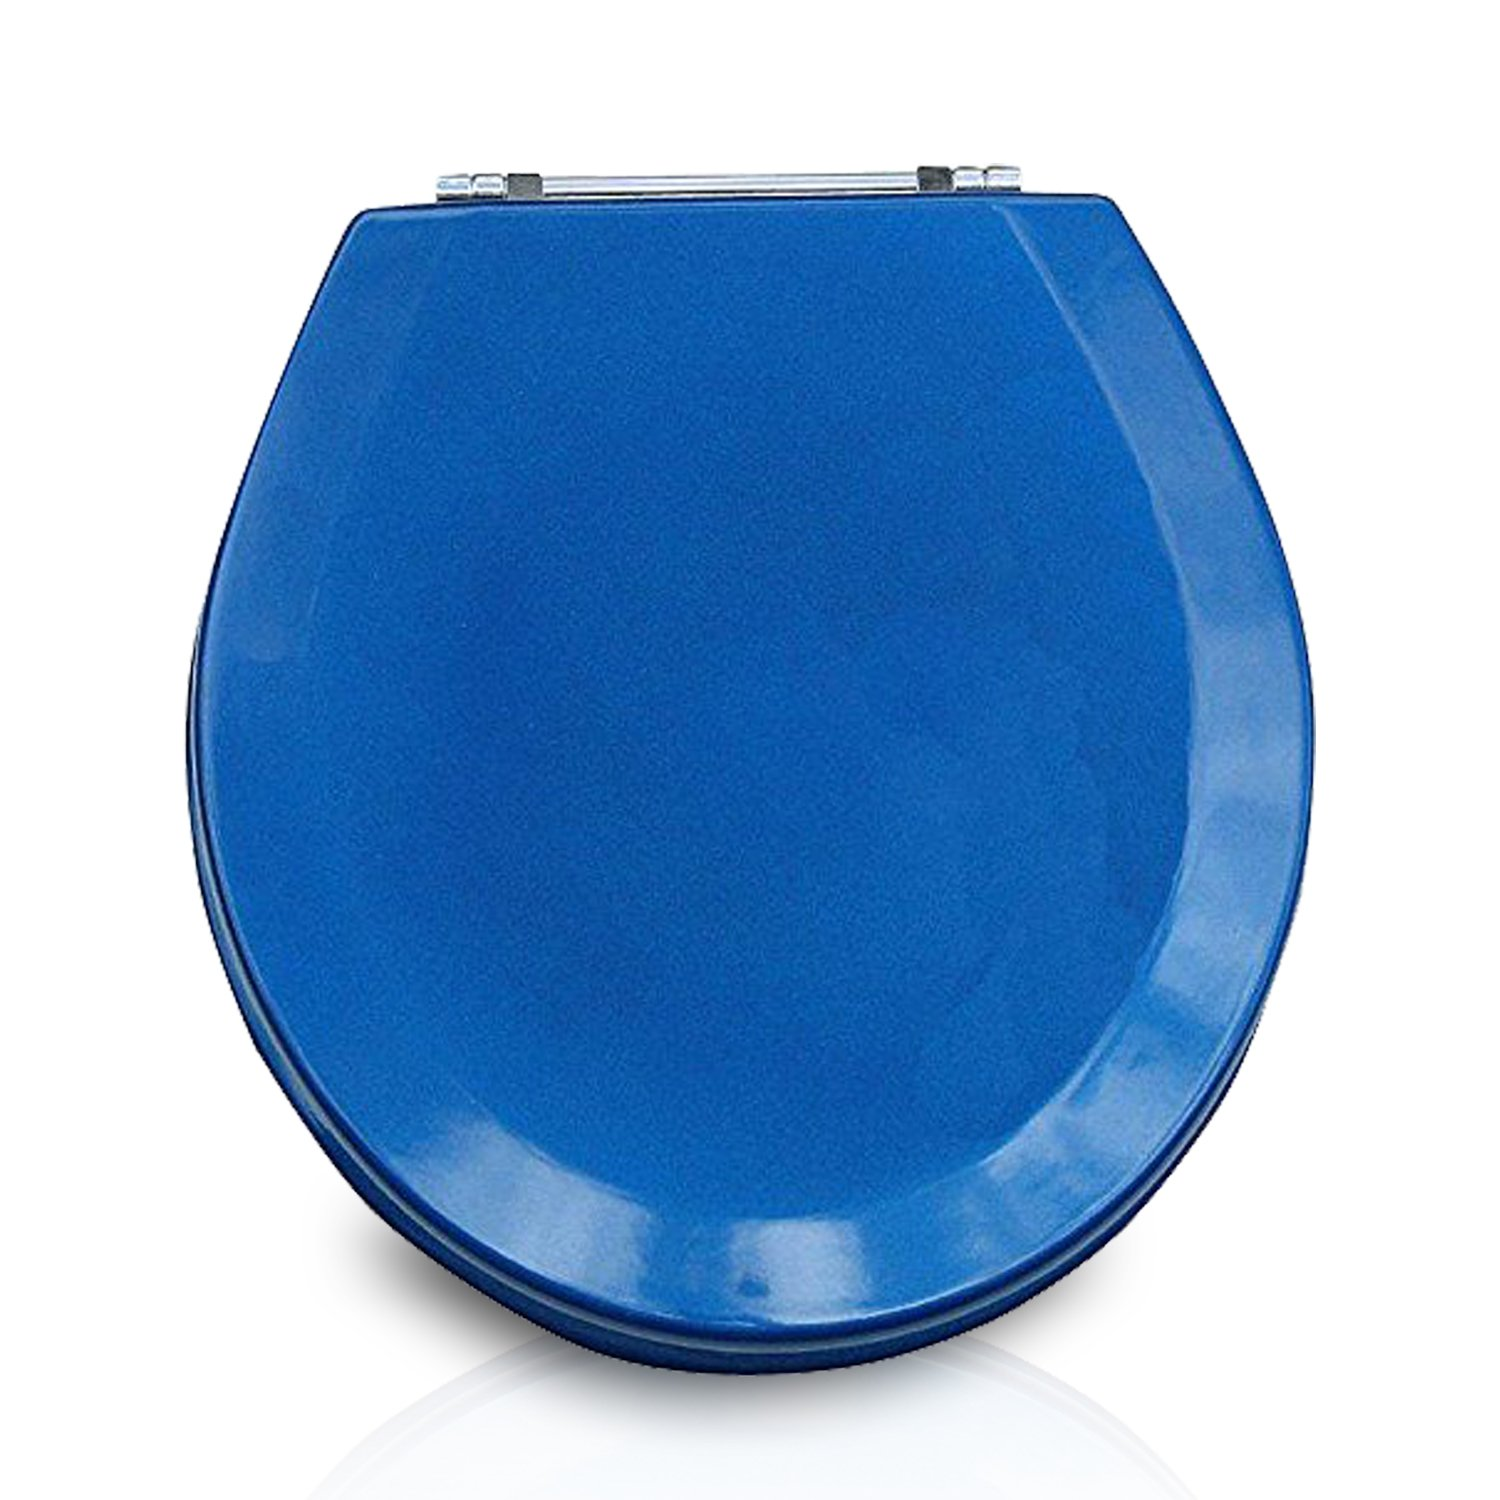 Trimmer Premium Molded Wood Toilet Seats With Multi-Coat Surface Finish - Water and Stain-resistant Finish with Chrome Hinges, Blue